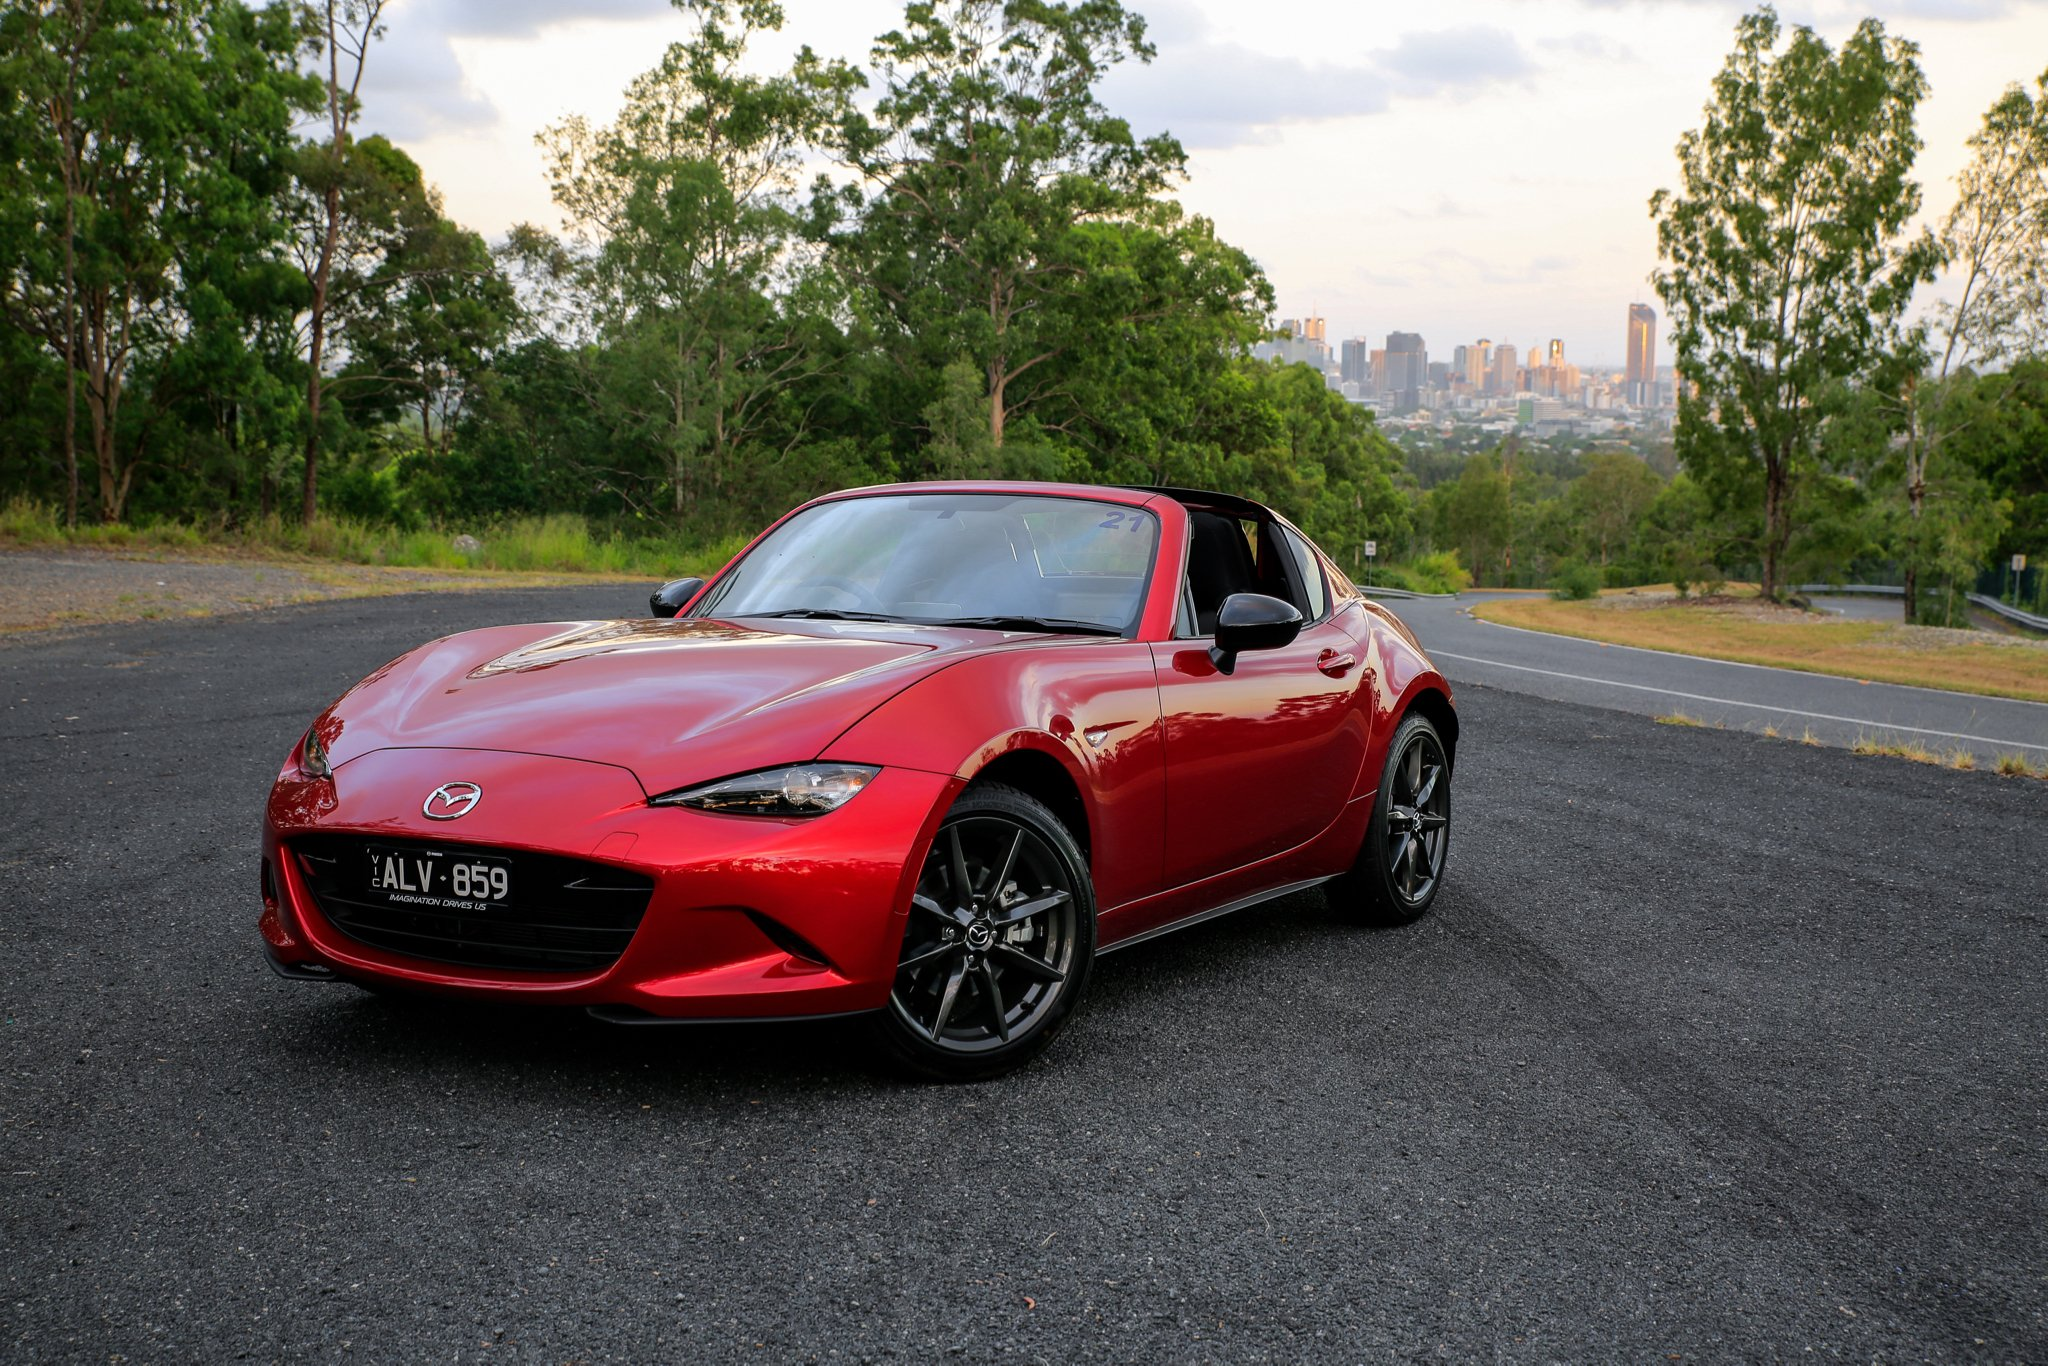 mazda mx 5 rf vs mazda mx 5 comparison photos. Black Bedroom Furniture Sets. Home Design Ideas